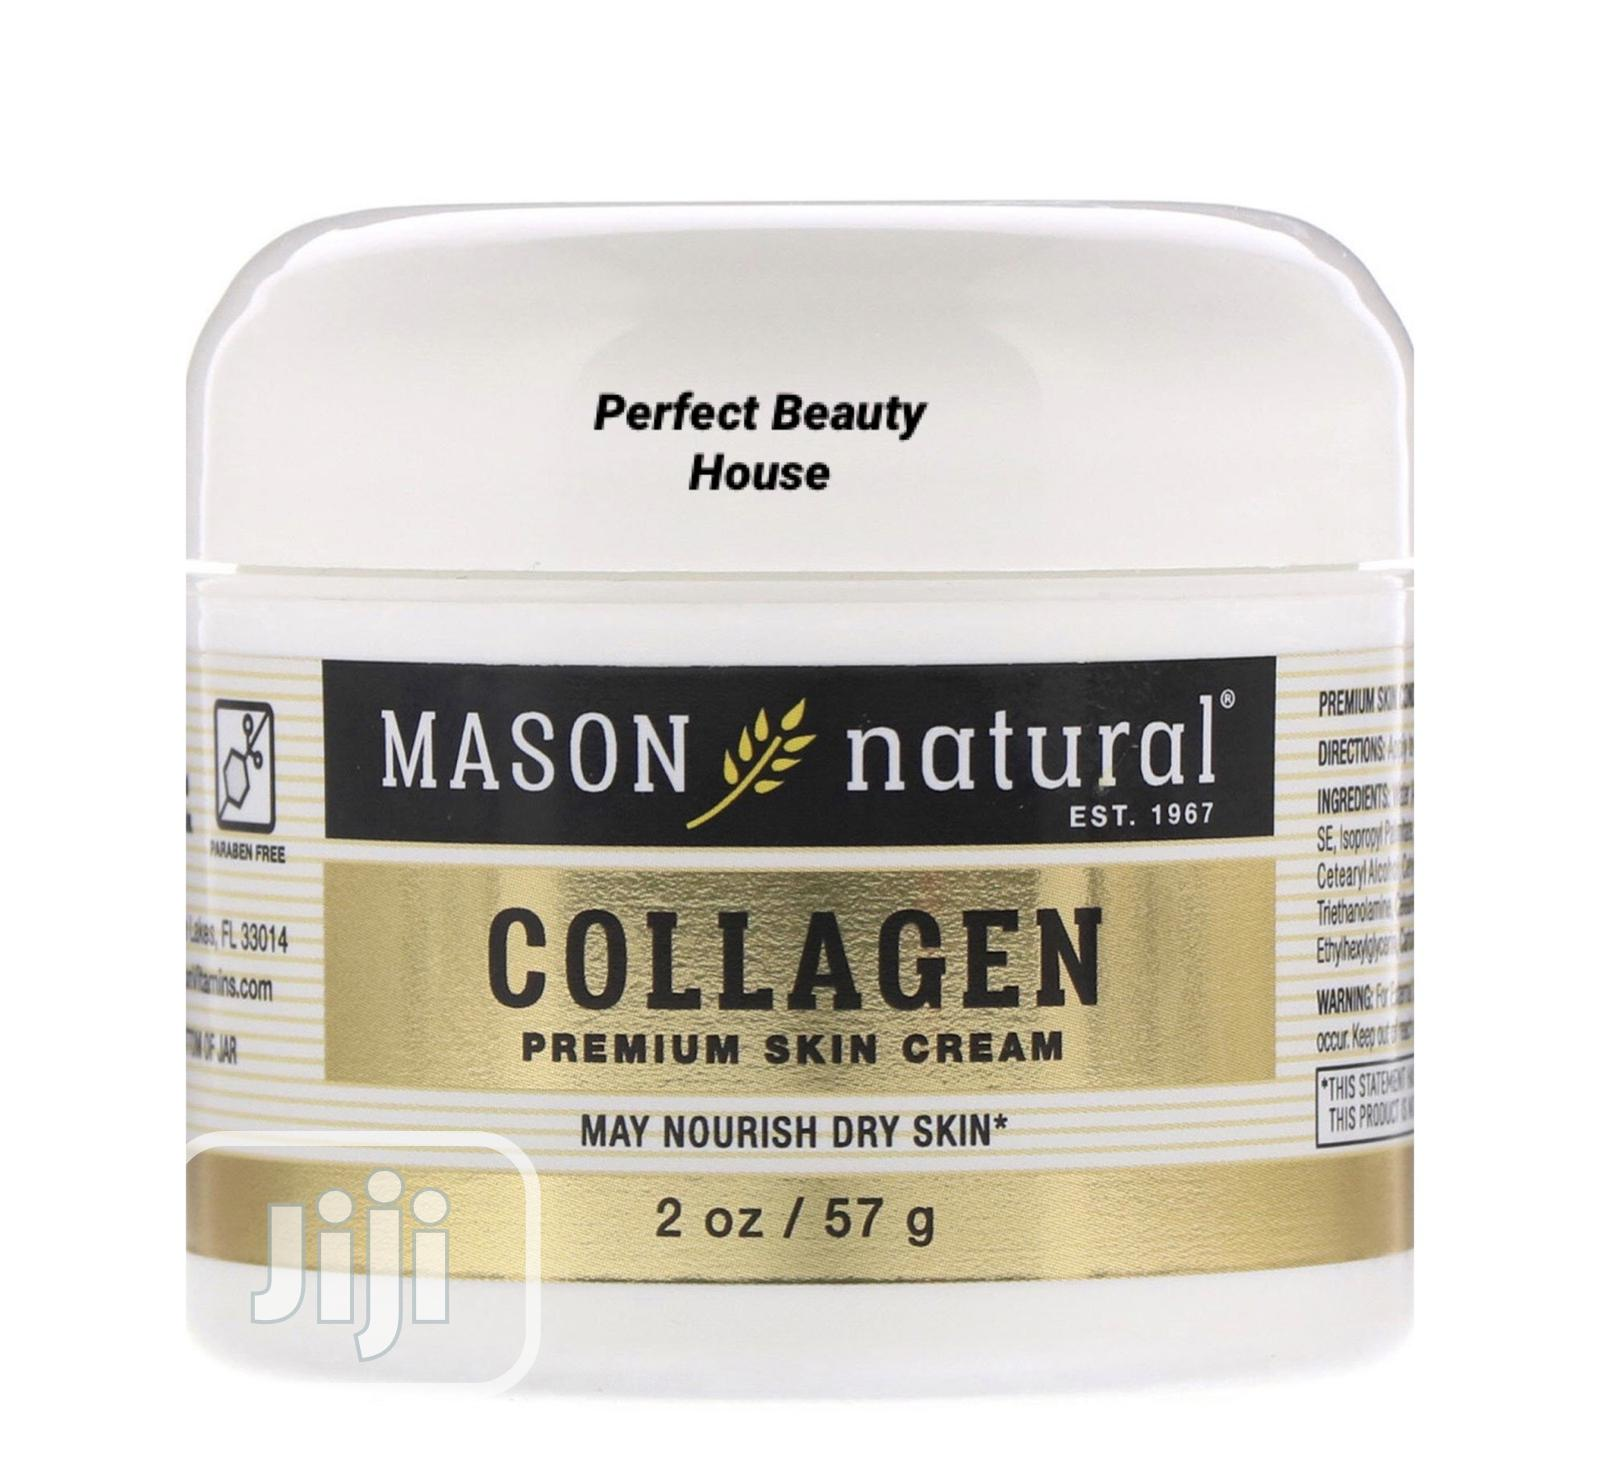 Mason Natural Collagen Premium Skin Cream 2 Oz 57g